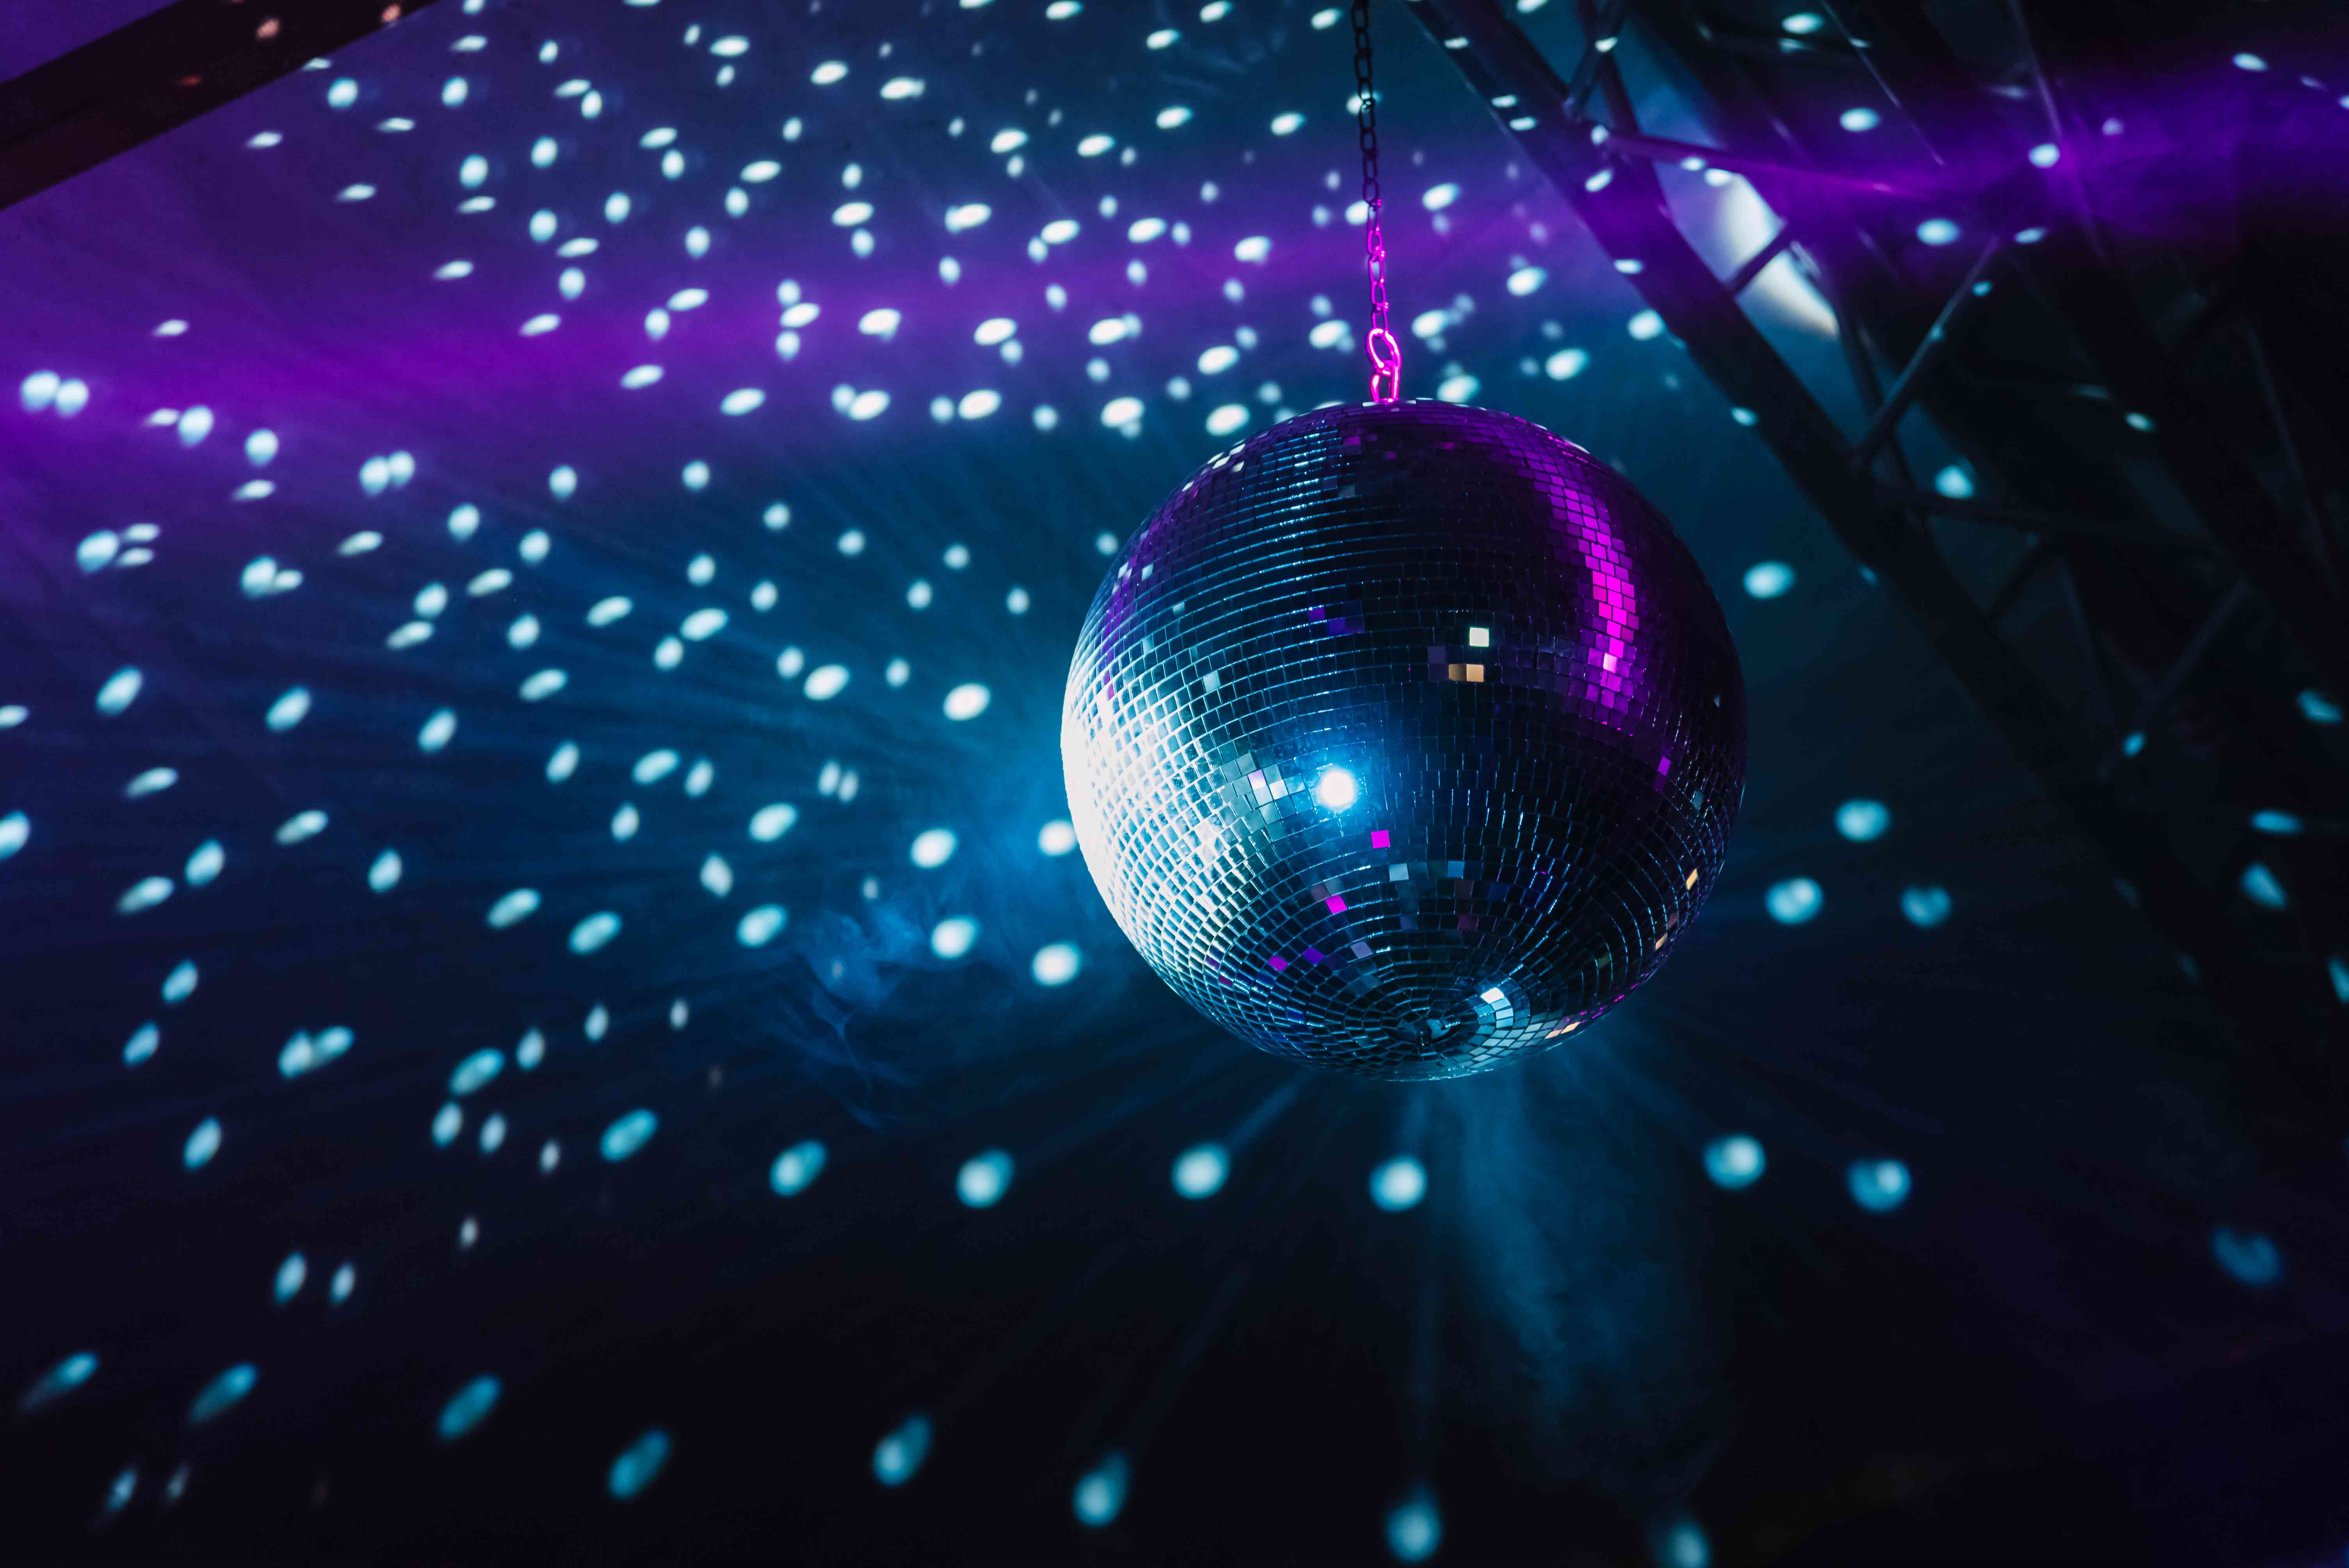 Low Angle View Of Illuminated Disco Ball Hanging On Ceiling In Nightclub